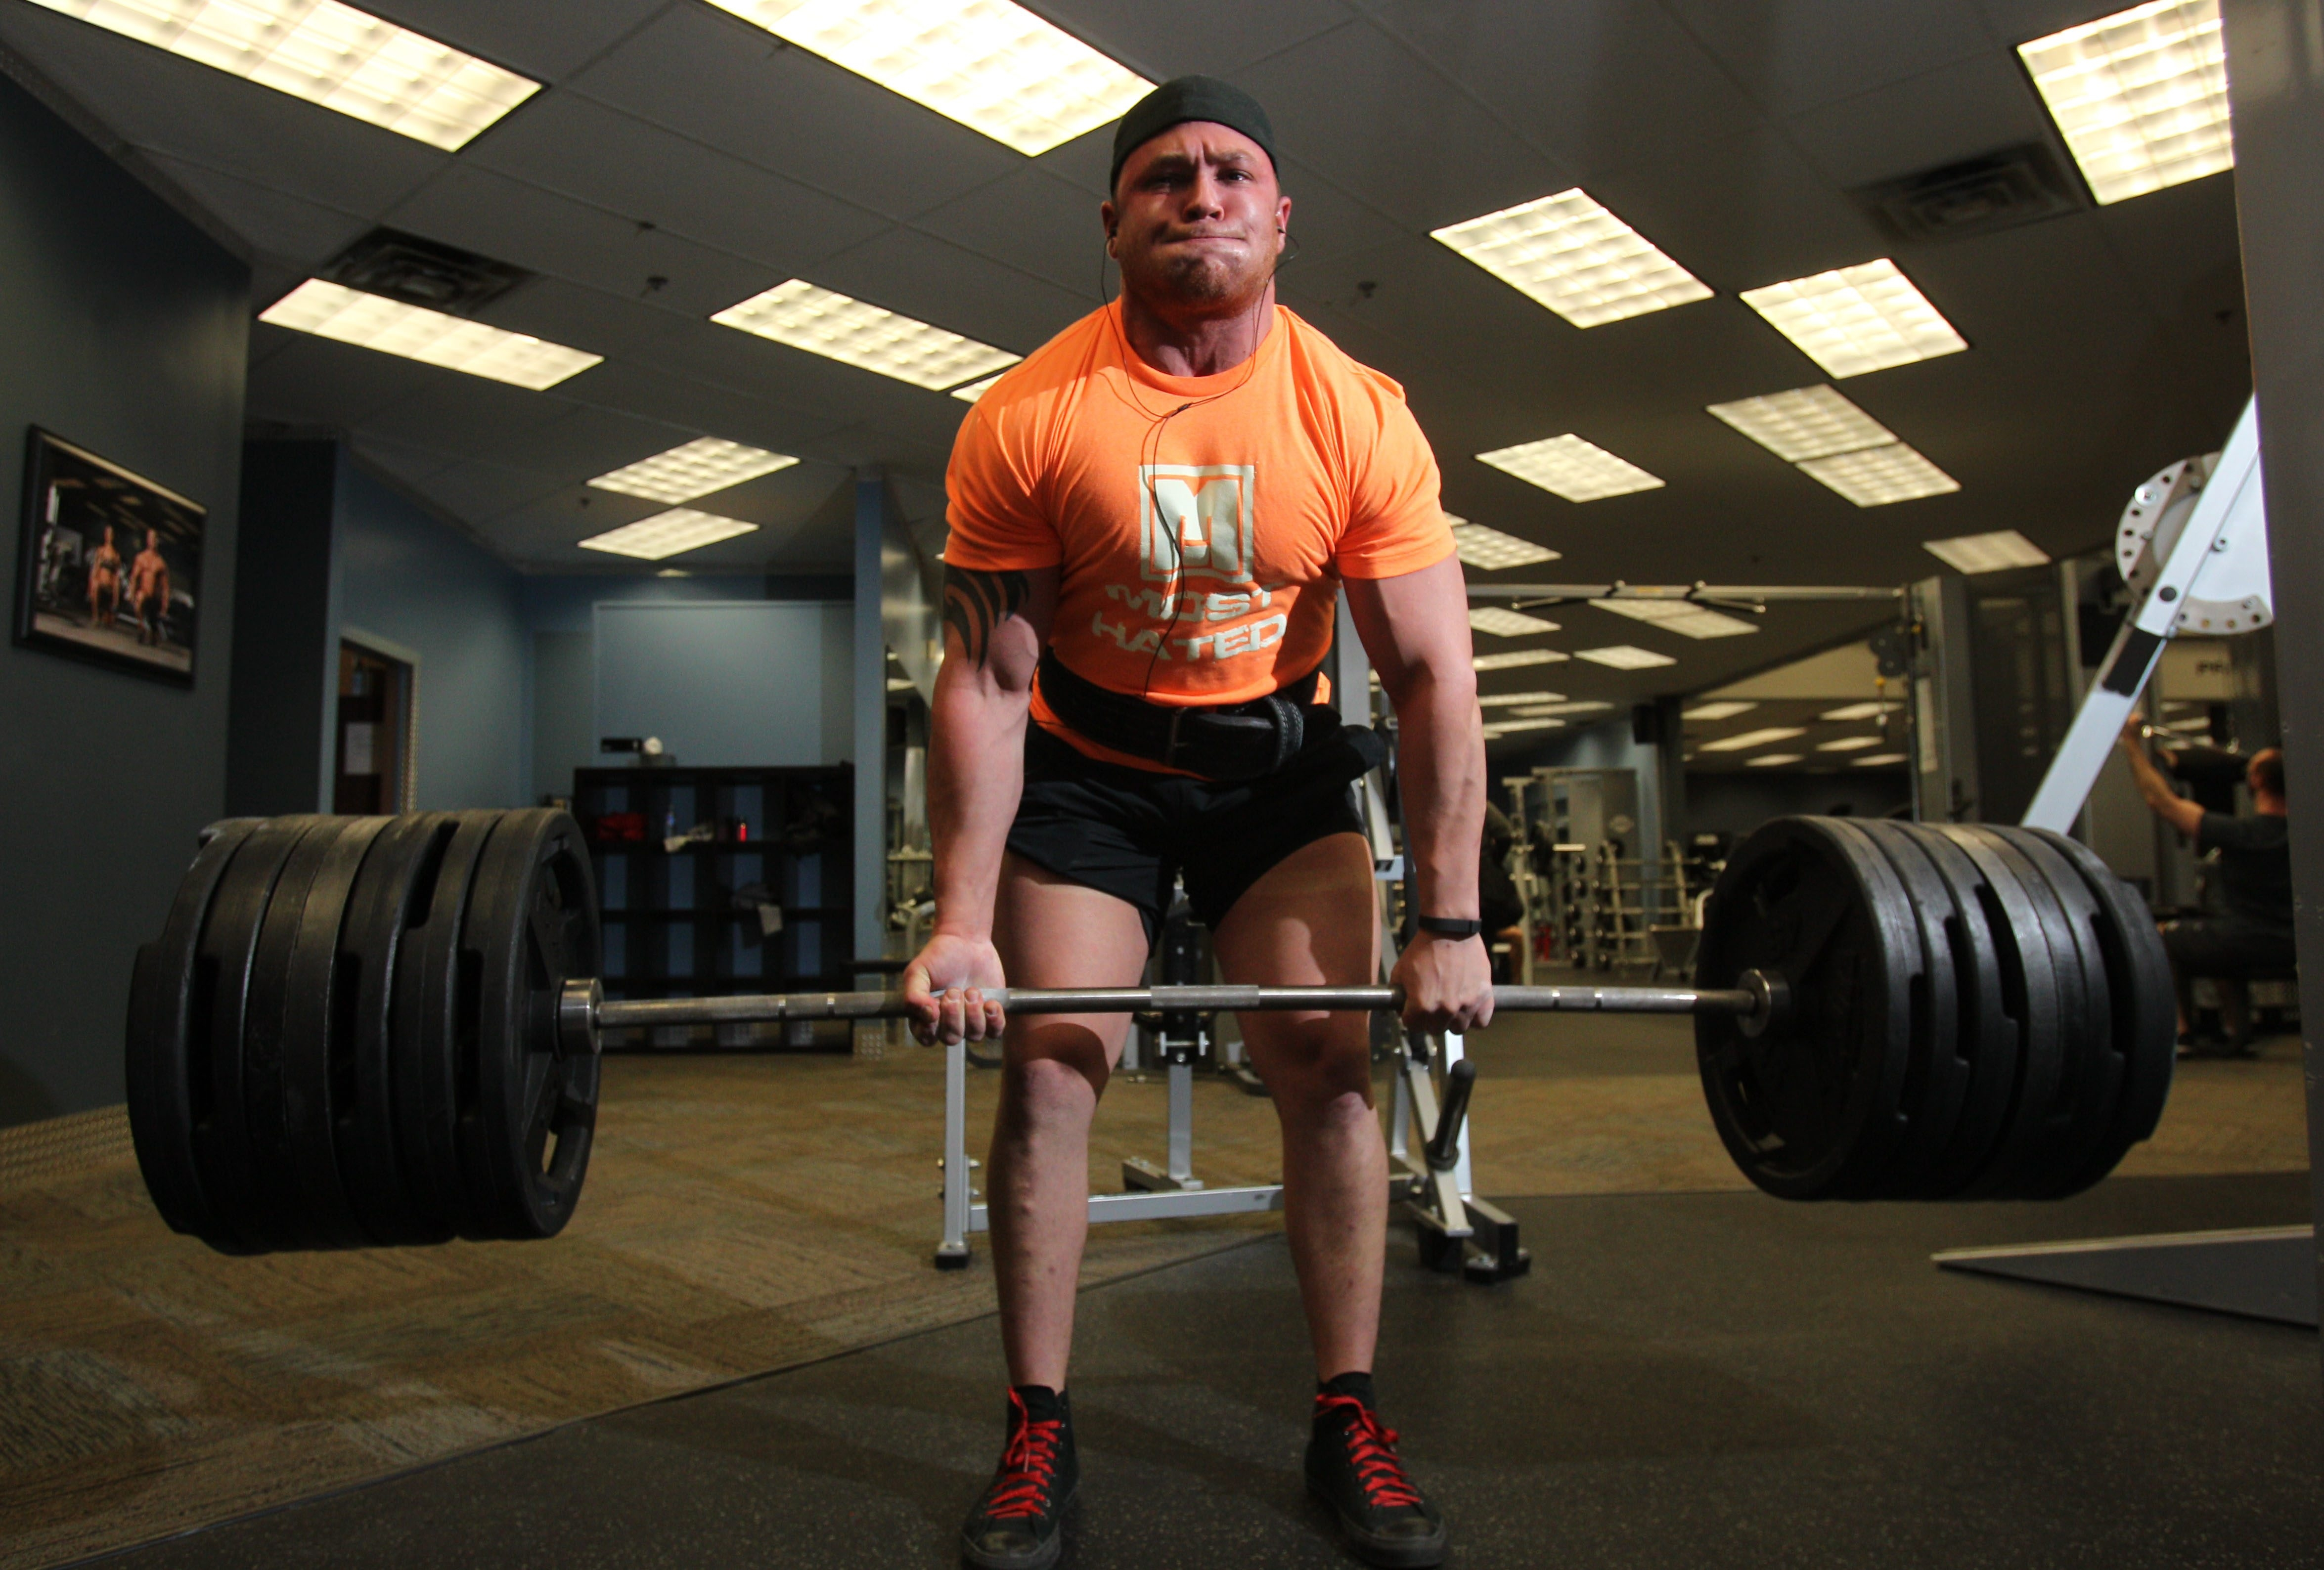 Luigi Fagiani of Niagara Falls trains at Primerano Fitness on Monday. During his session, the 23-year-old powerlifter worked up to lifting 745 pounds. Fagiani recently set records for his age and weight class.